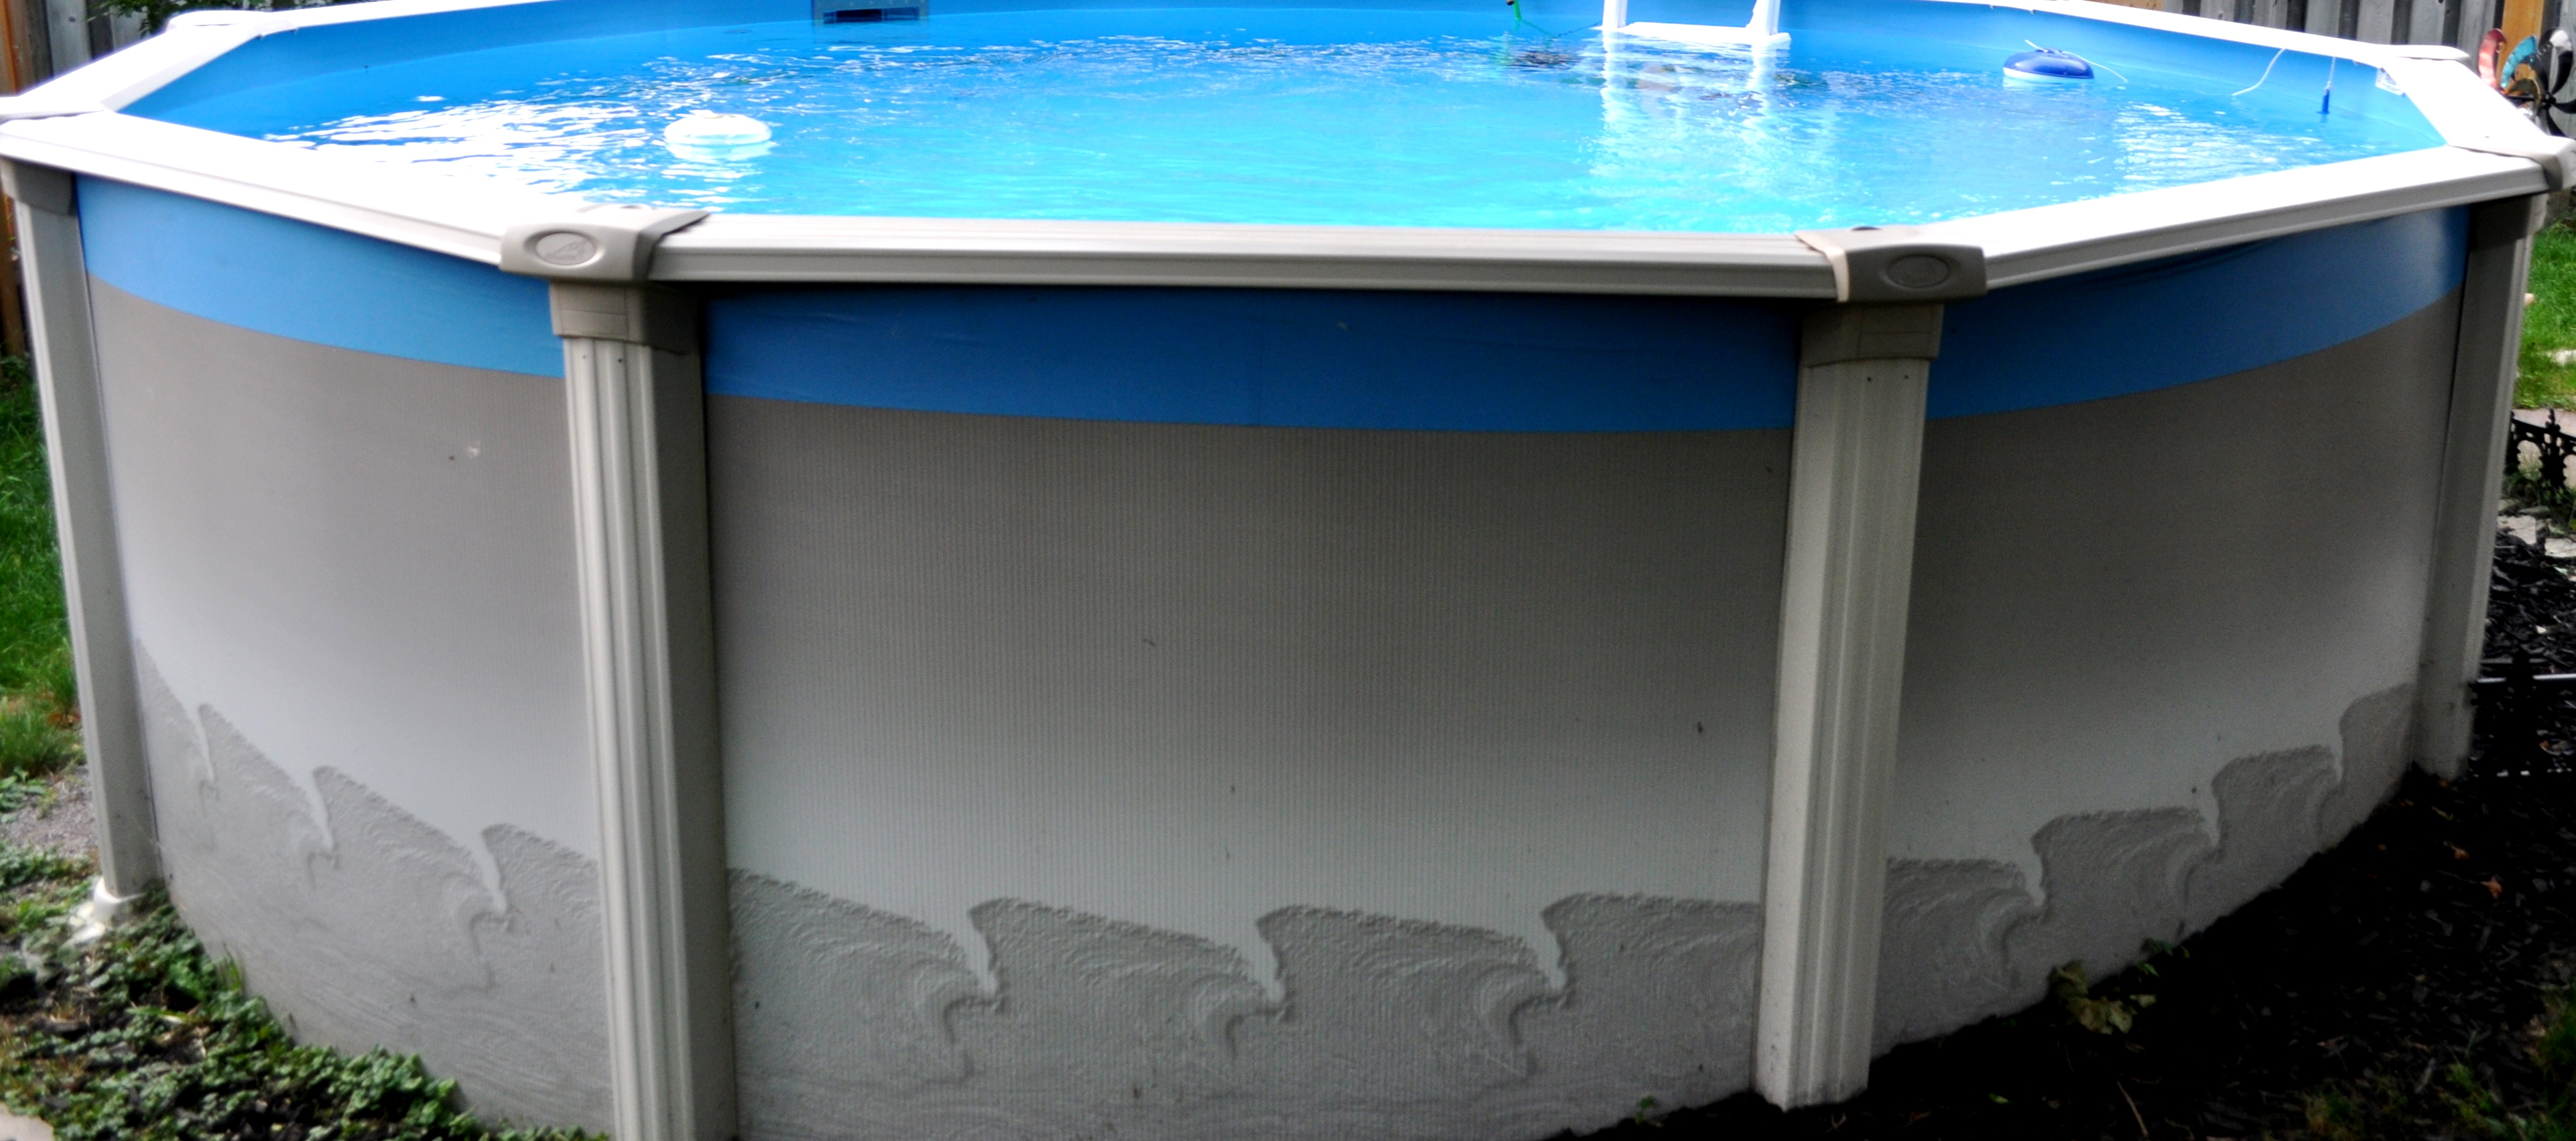 LILYAN'S 15' ABOVE GROUND POOL (7)